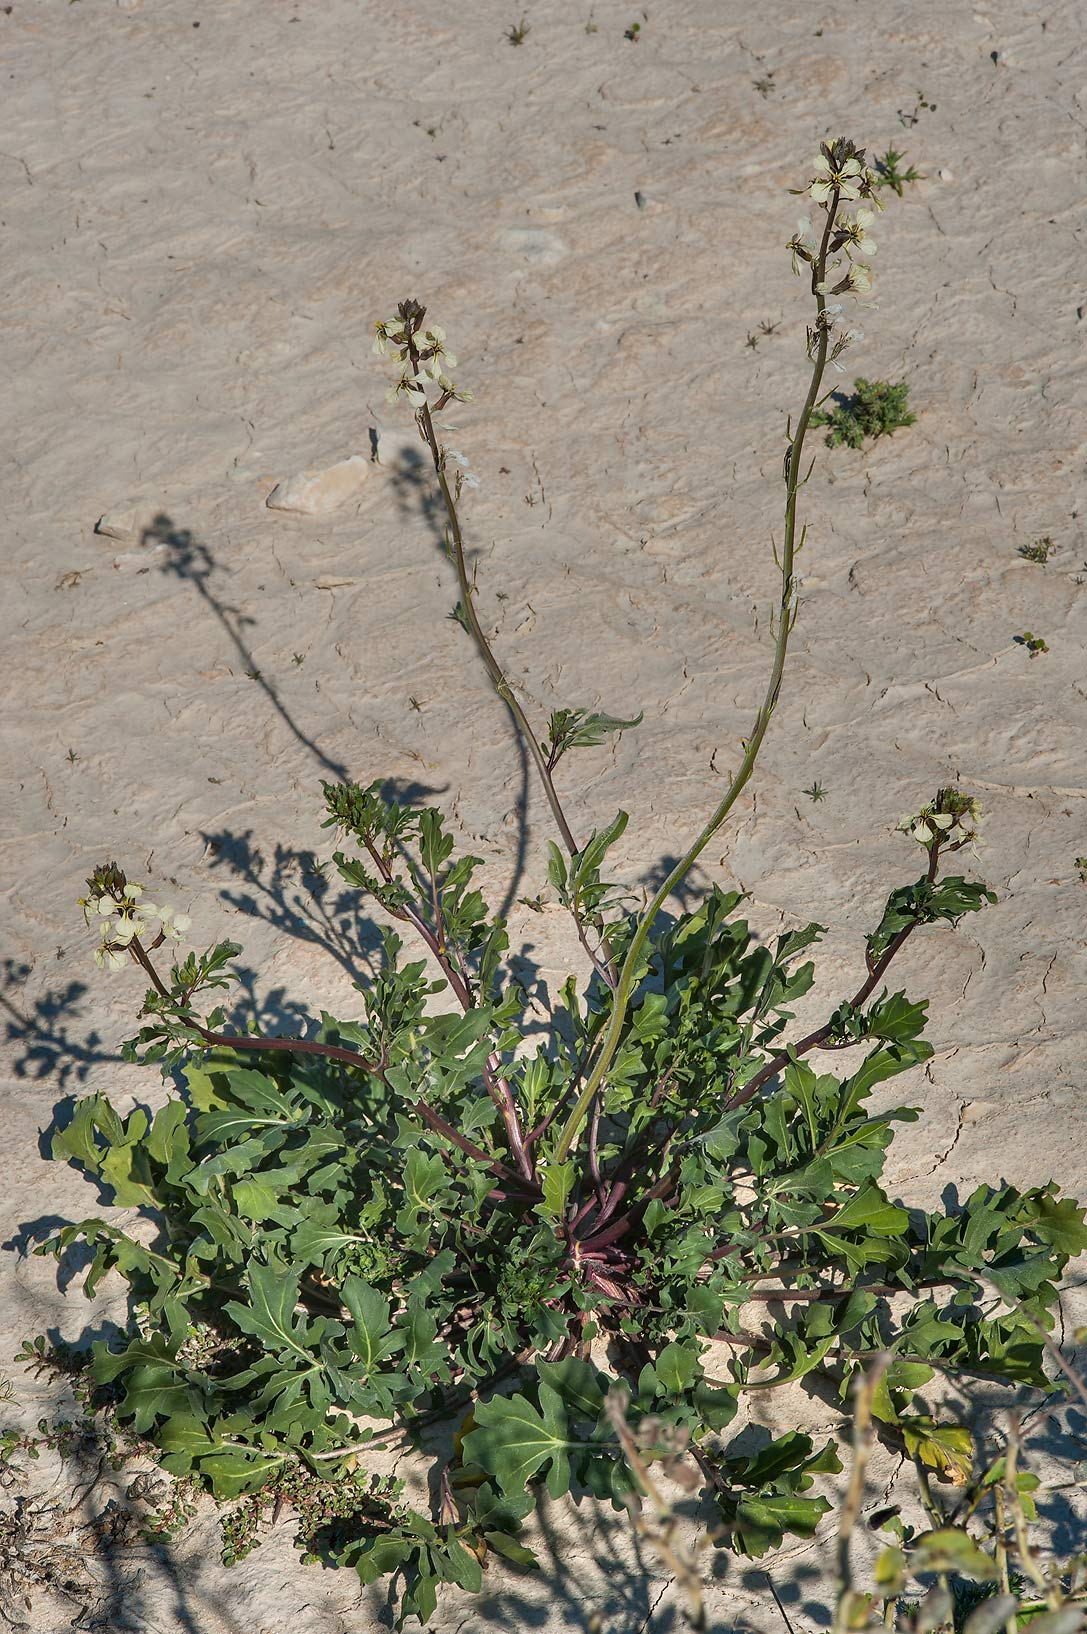 Blooming plant of Eruca vesicaria (rocket) in...depression near Dukhan Highway. Qatar